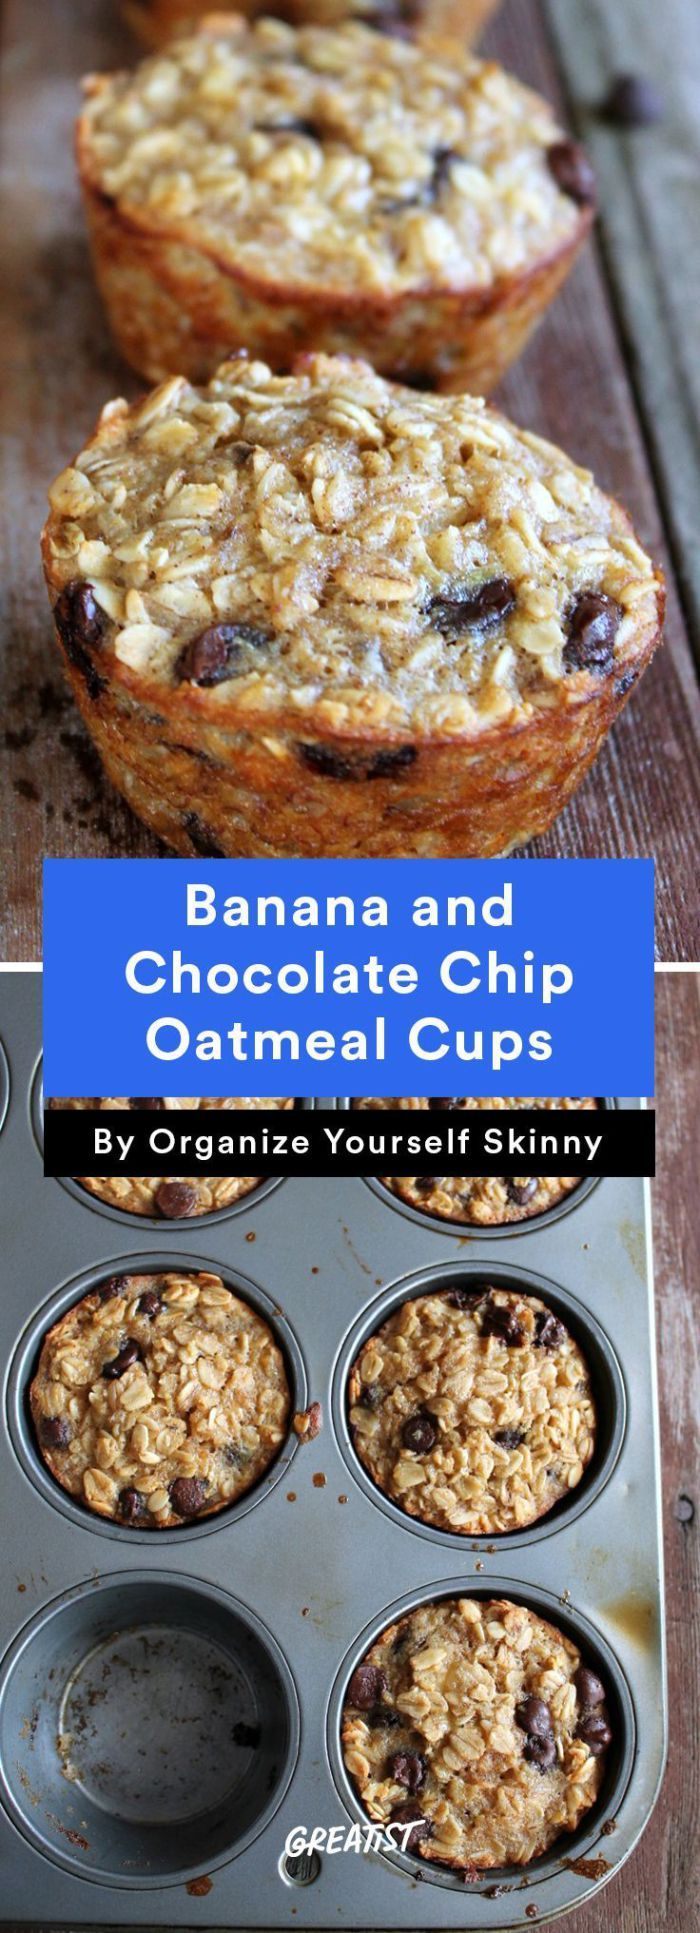 4. Banana and Chocolate Chip Oatmeal Cups #healthy #breakfast #recipes greatist.com/